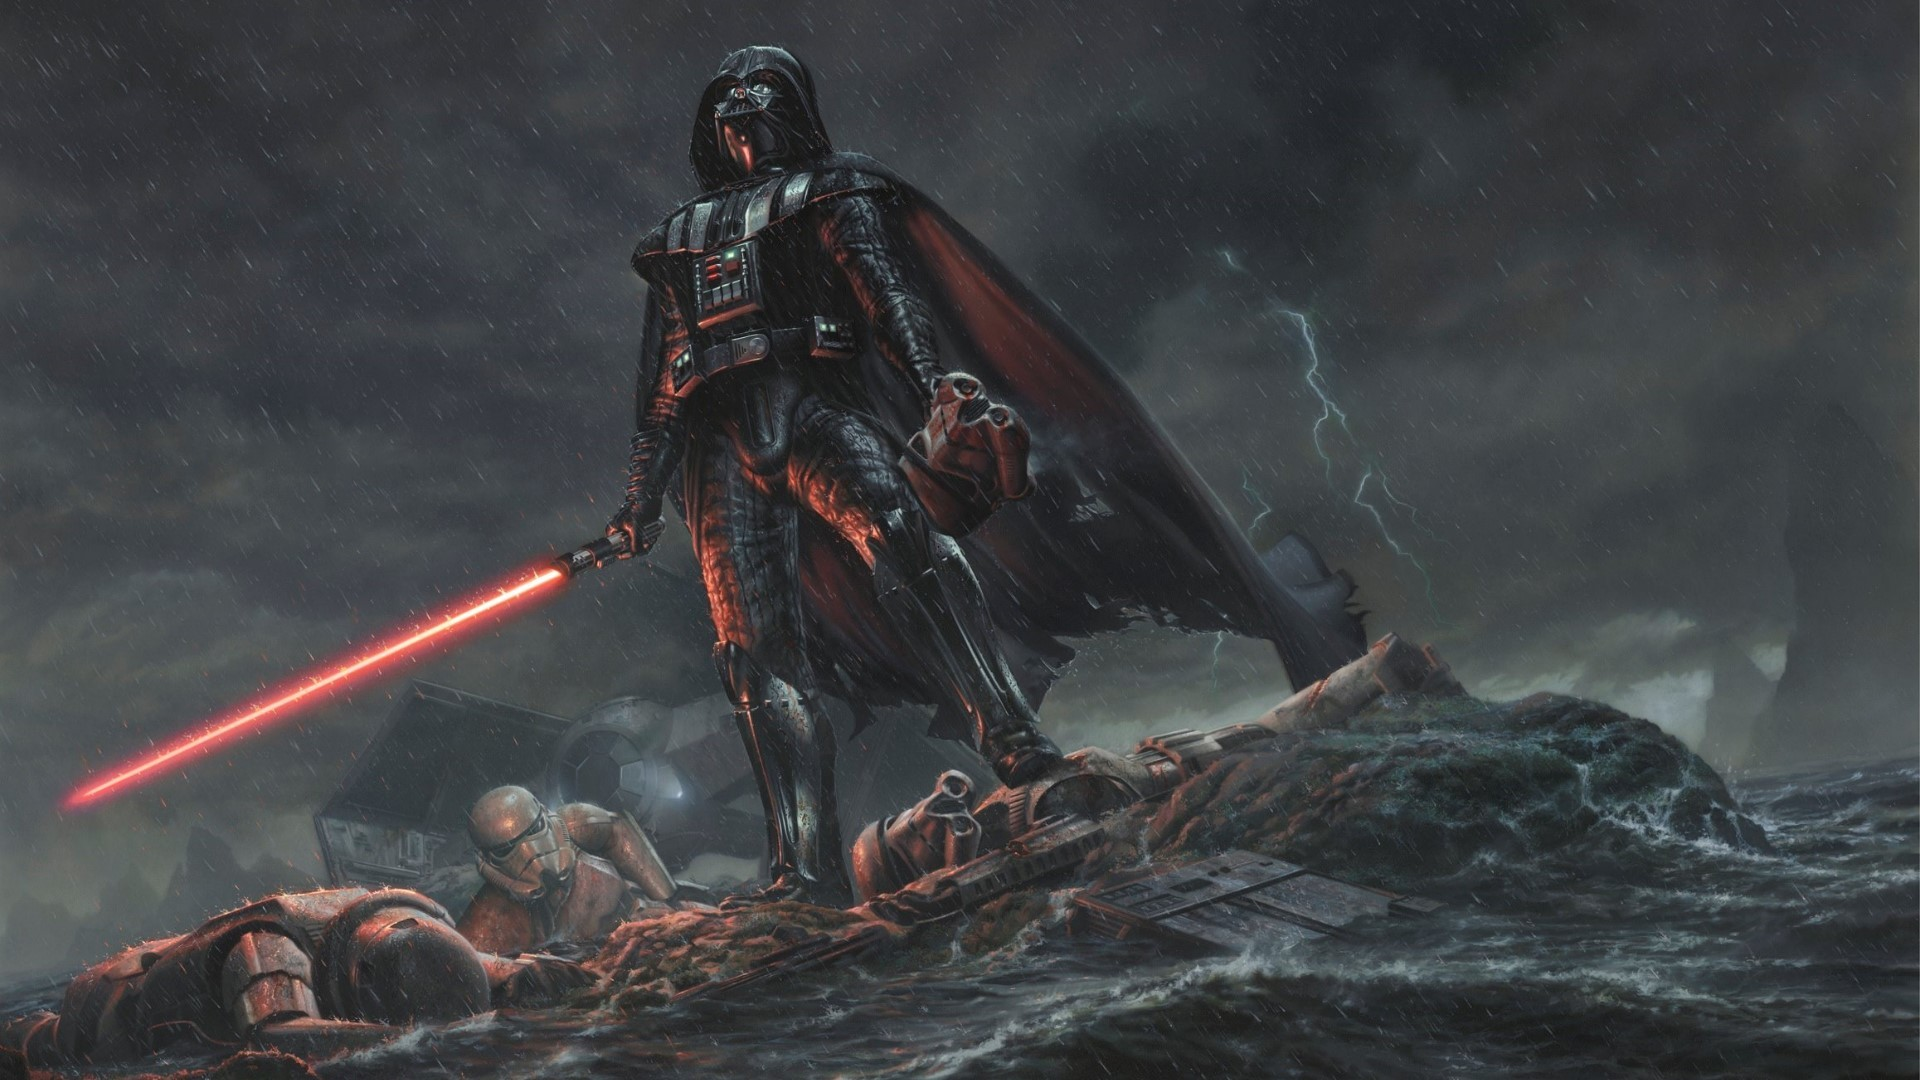 Darth Vader Wallpaper 75 Images